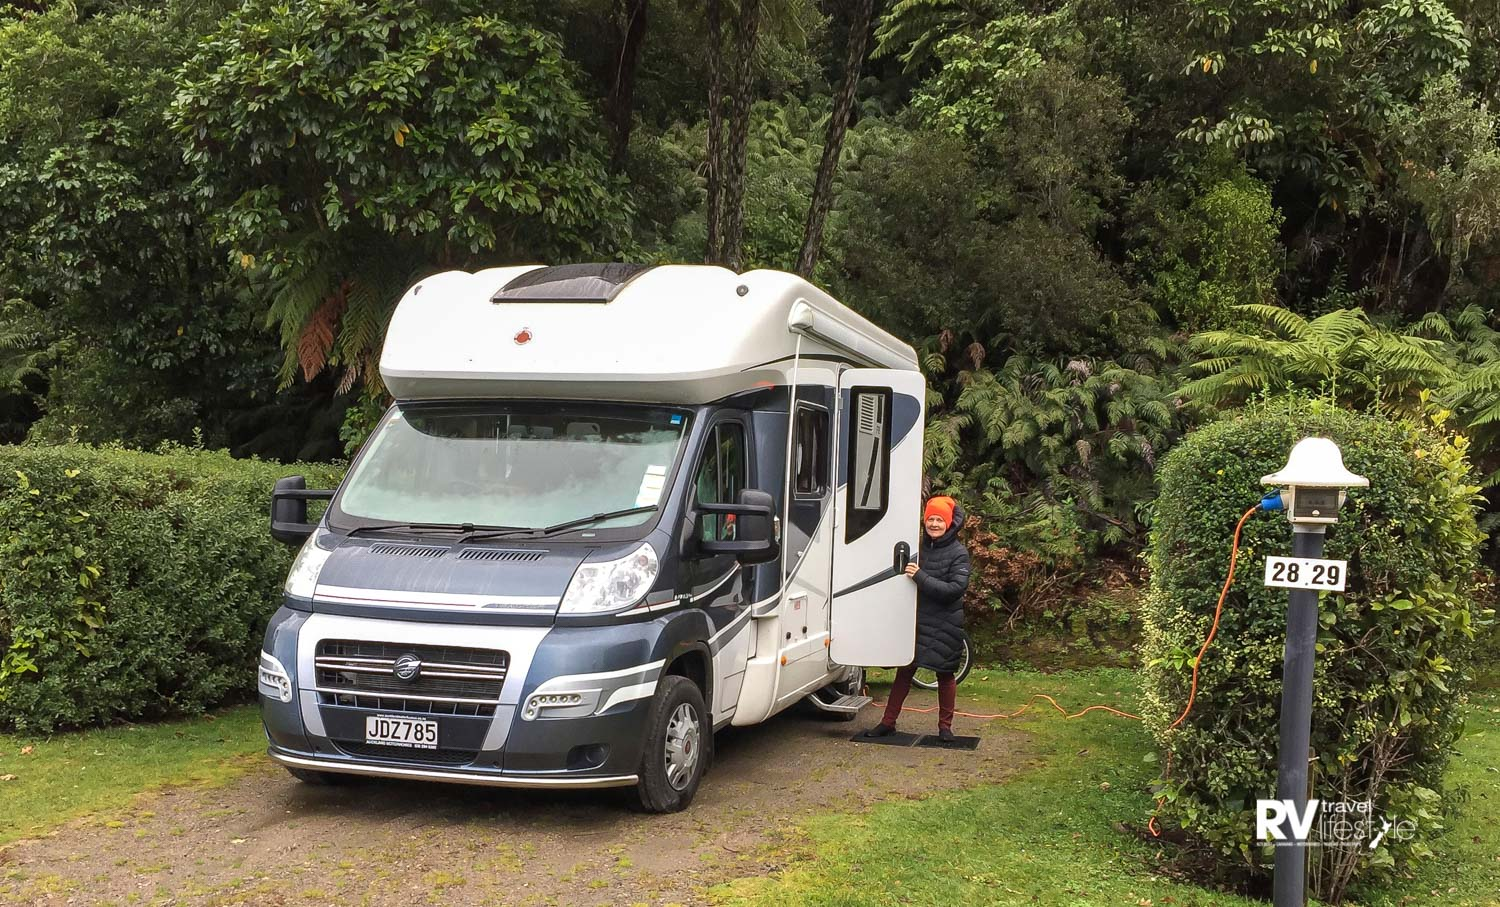 Winter time and it's cold and wet at the Blue Lake Top 10 Holiday Park, but Wendy will find it warm and cosy inside the Tracker FB